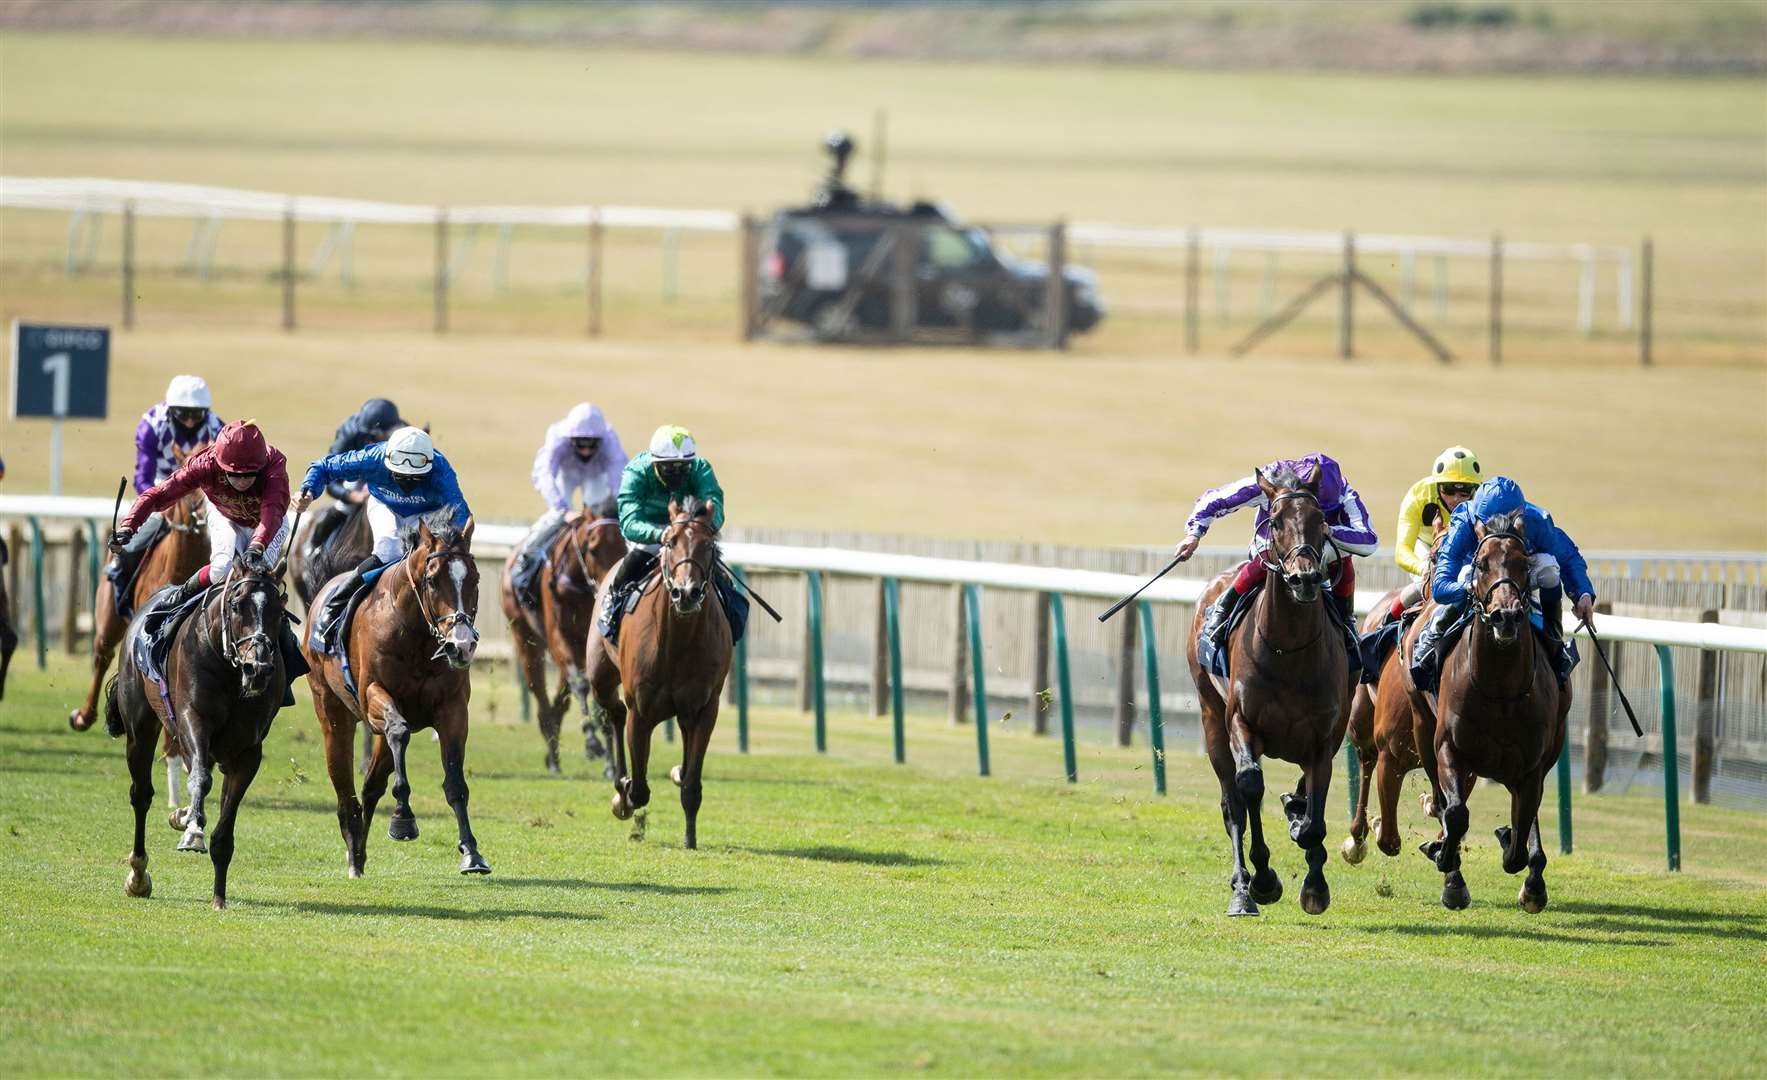 Kameko (Oisin Murphy,left) wins the Qipco 2000 Guineas from Wichita (2nd right) and Pinatubo (right).Newmarket 6.6.20 Pic: Edward Whitaker. (36301720)